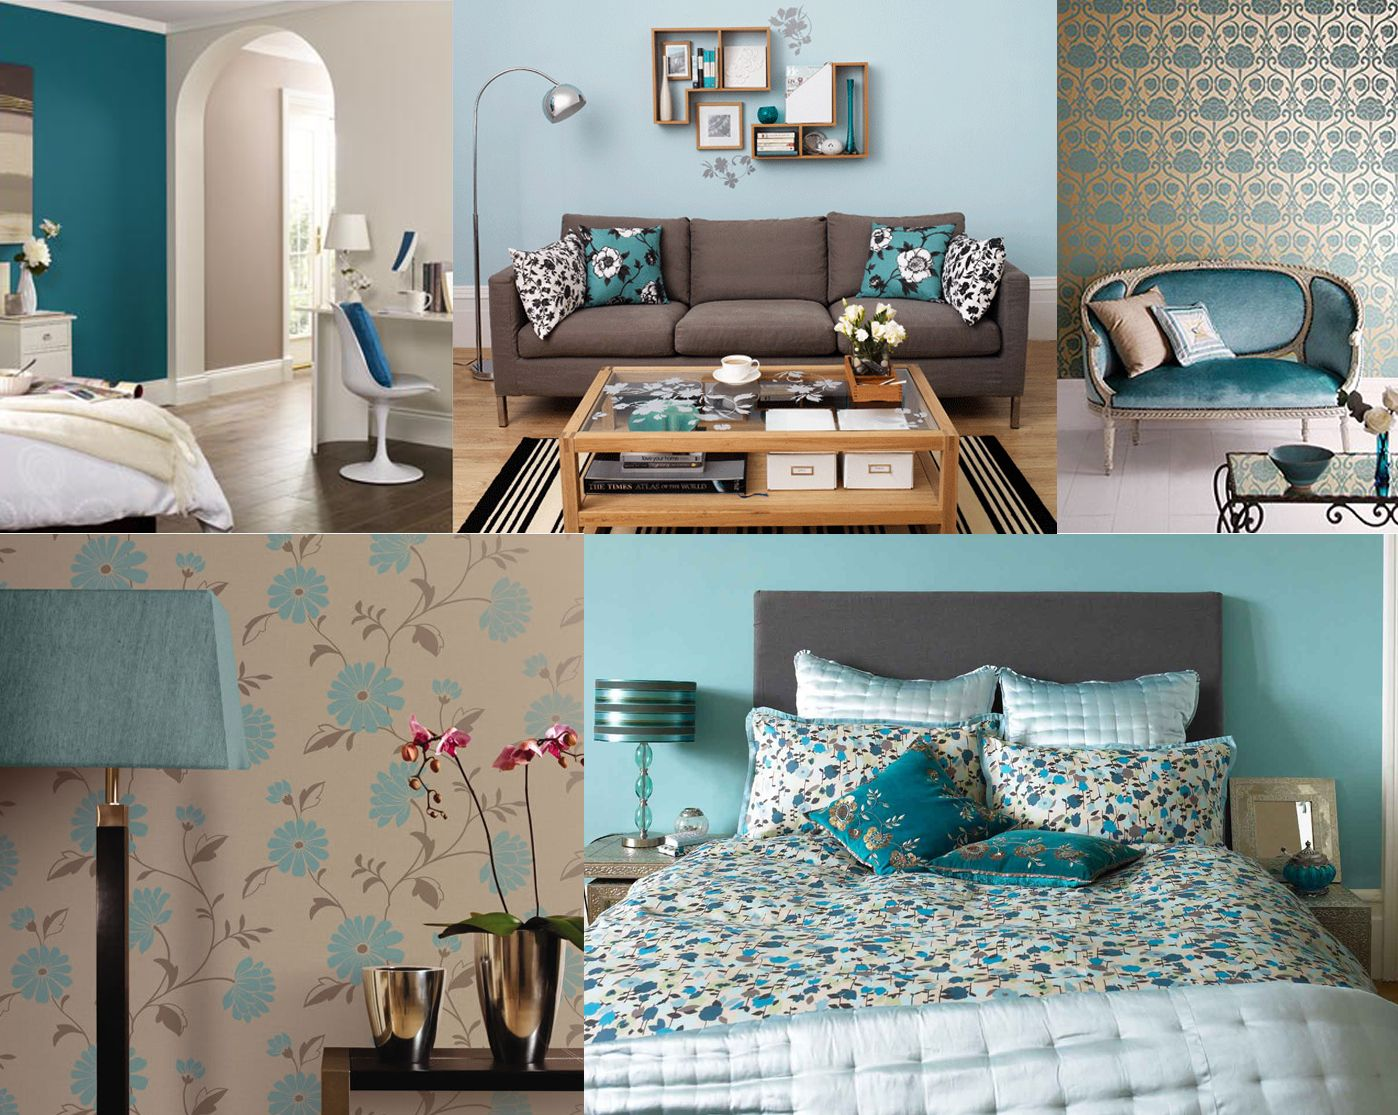 How To Use Teal And Taupe In Your Interior Design Taupe